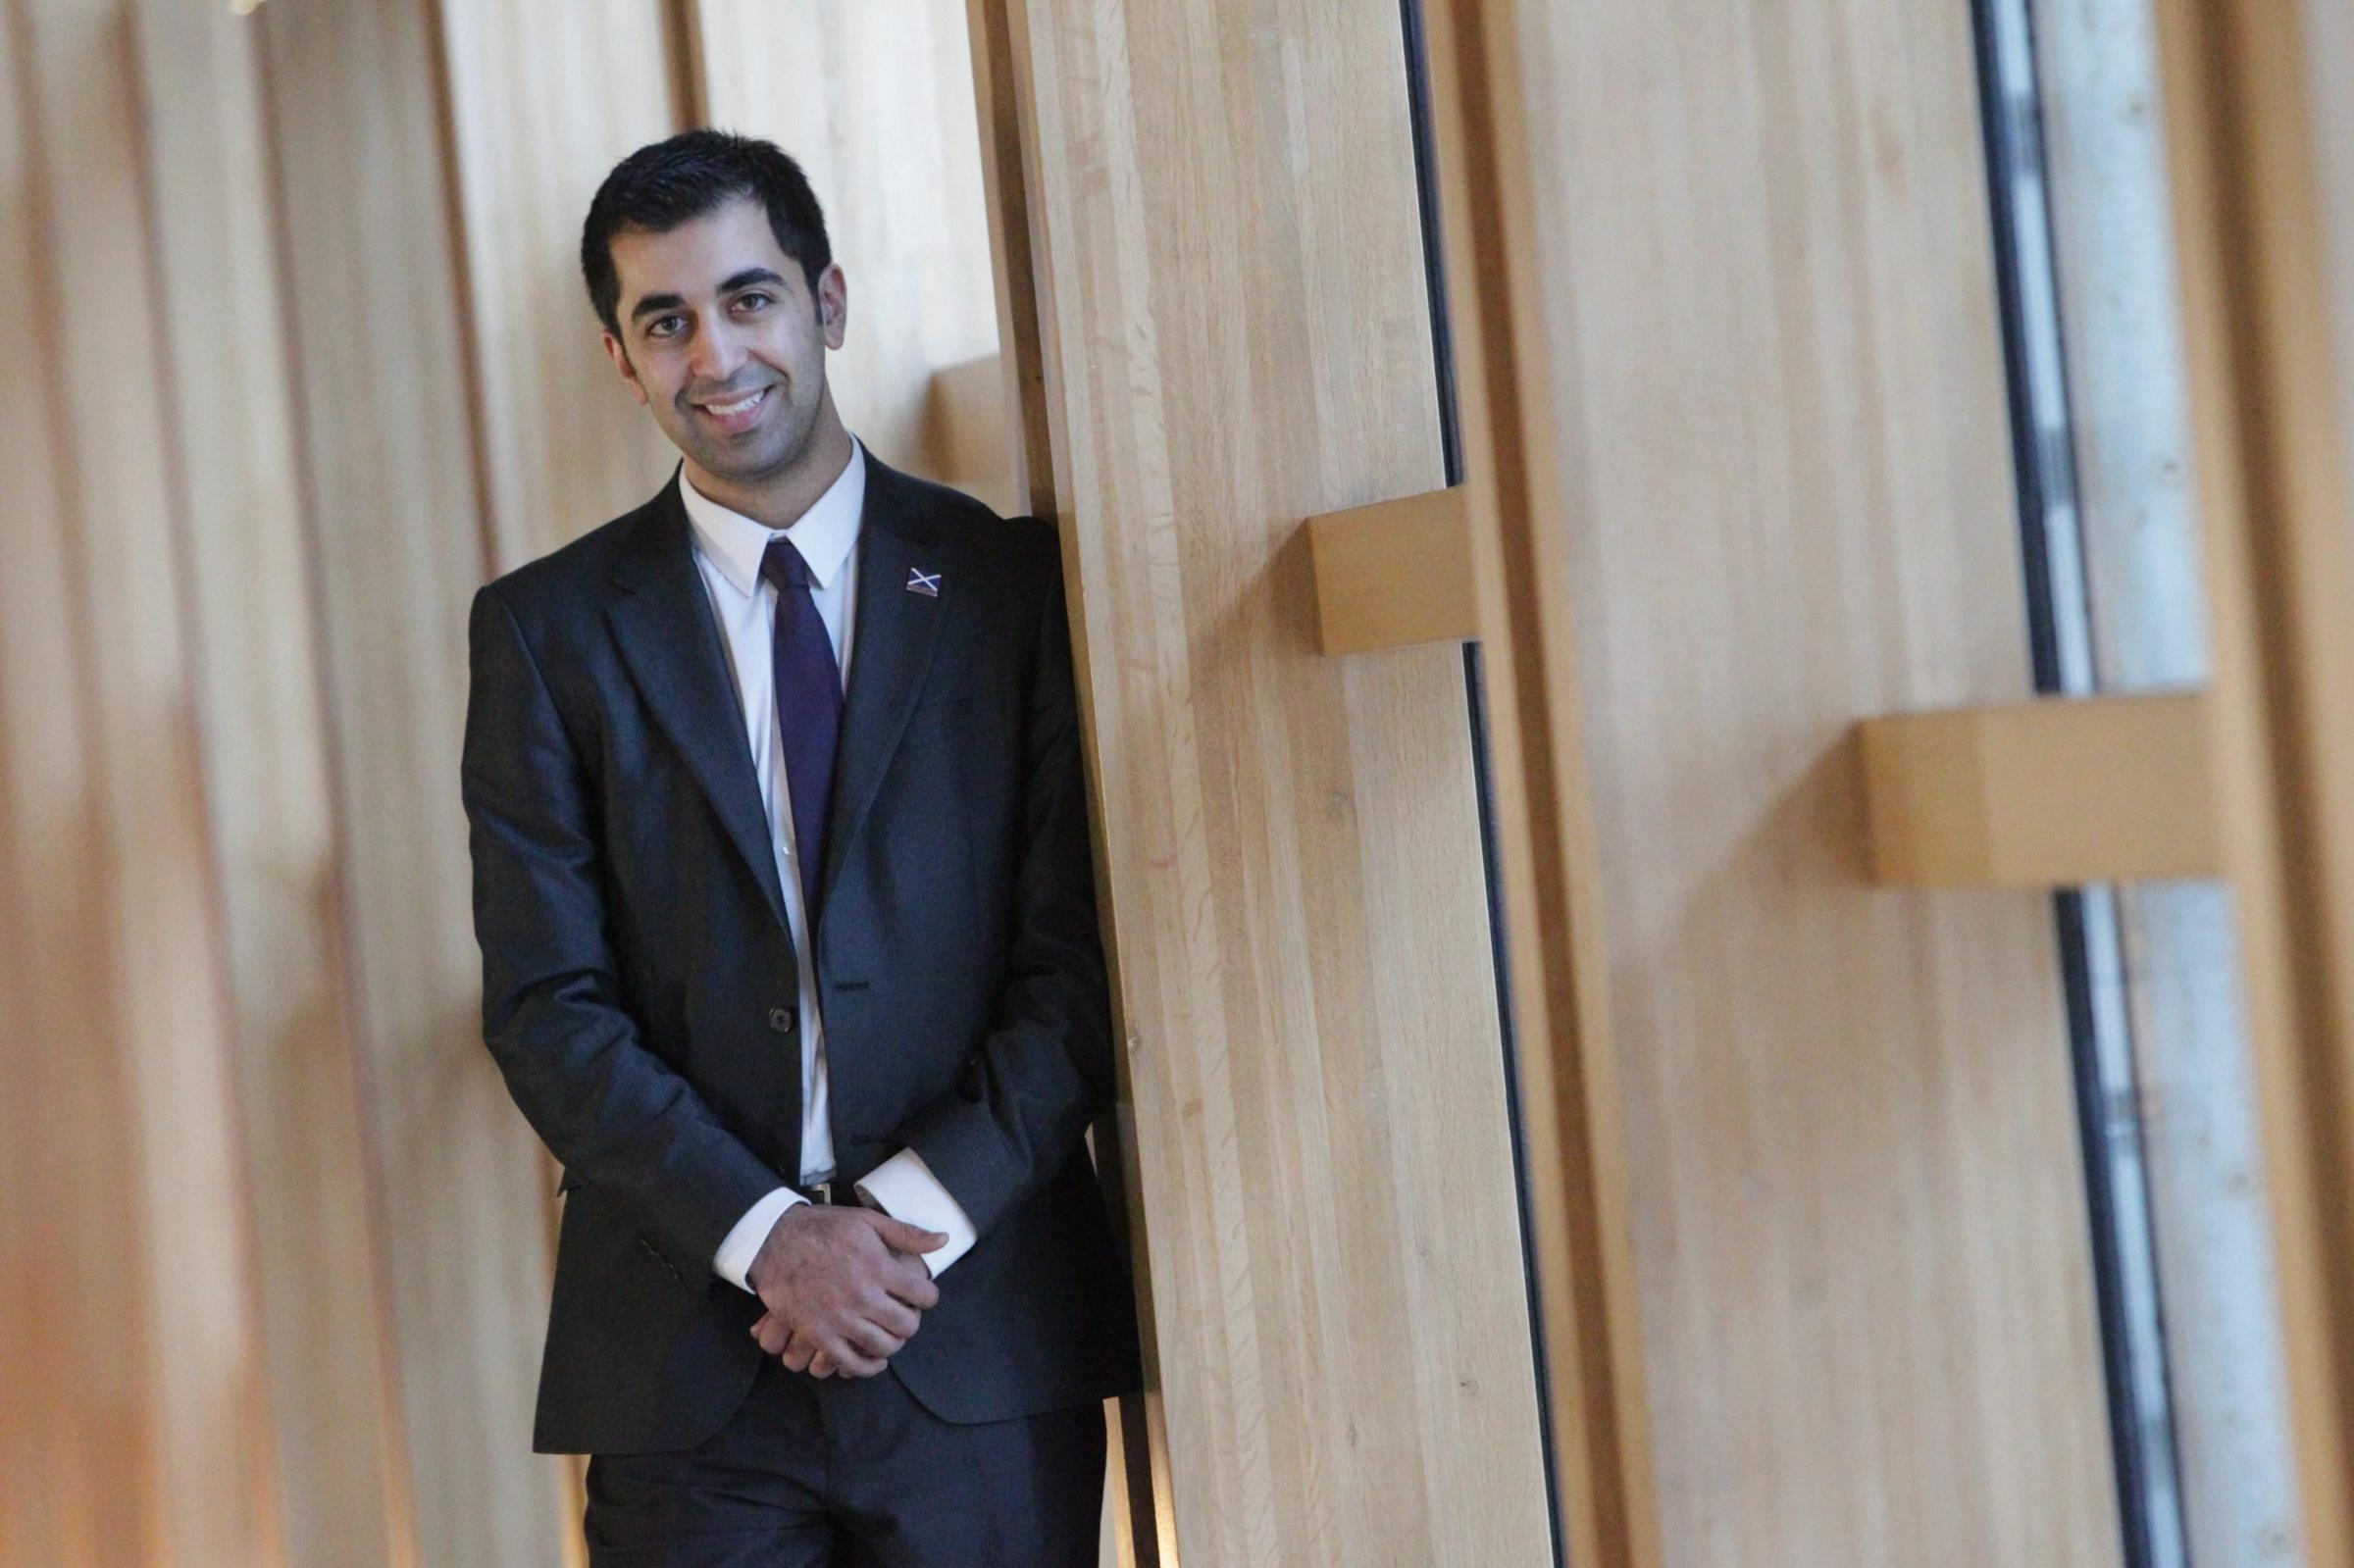 Humza Yousaf: Reflections on 2015